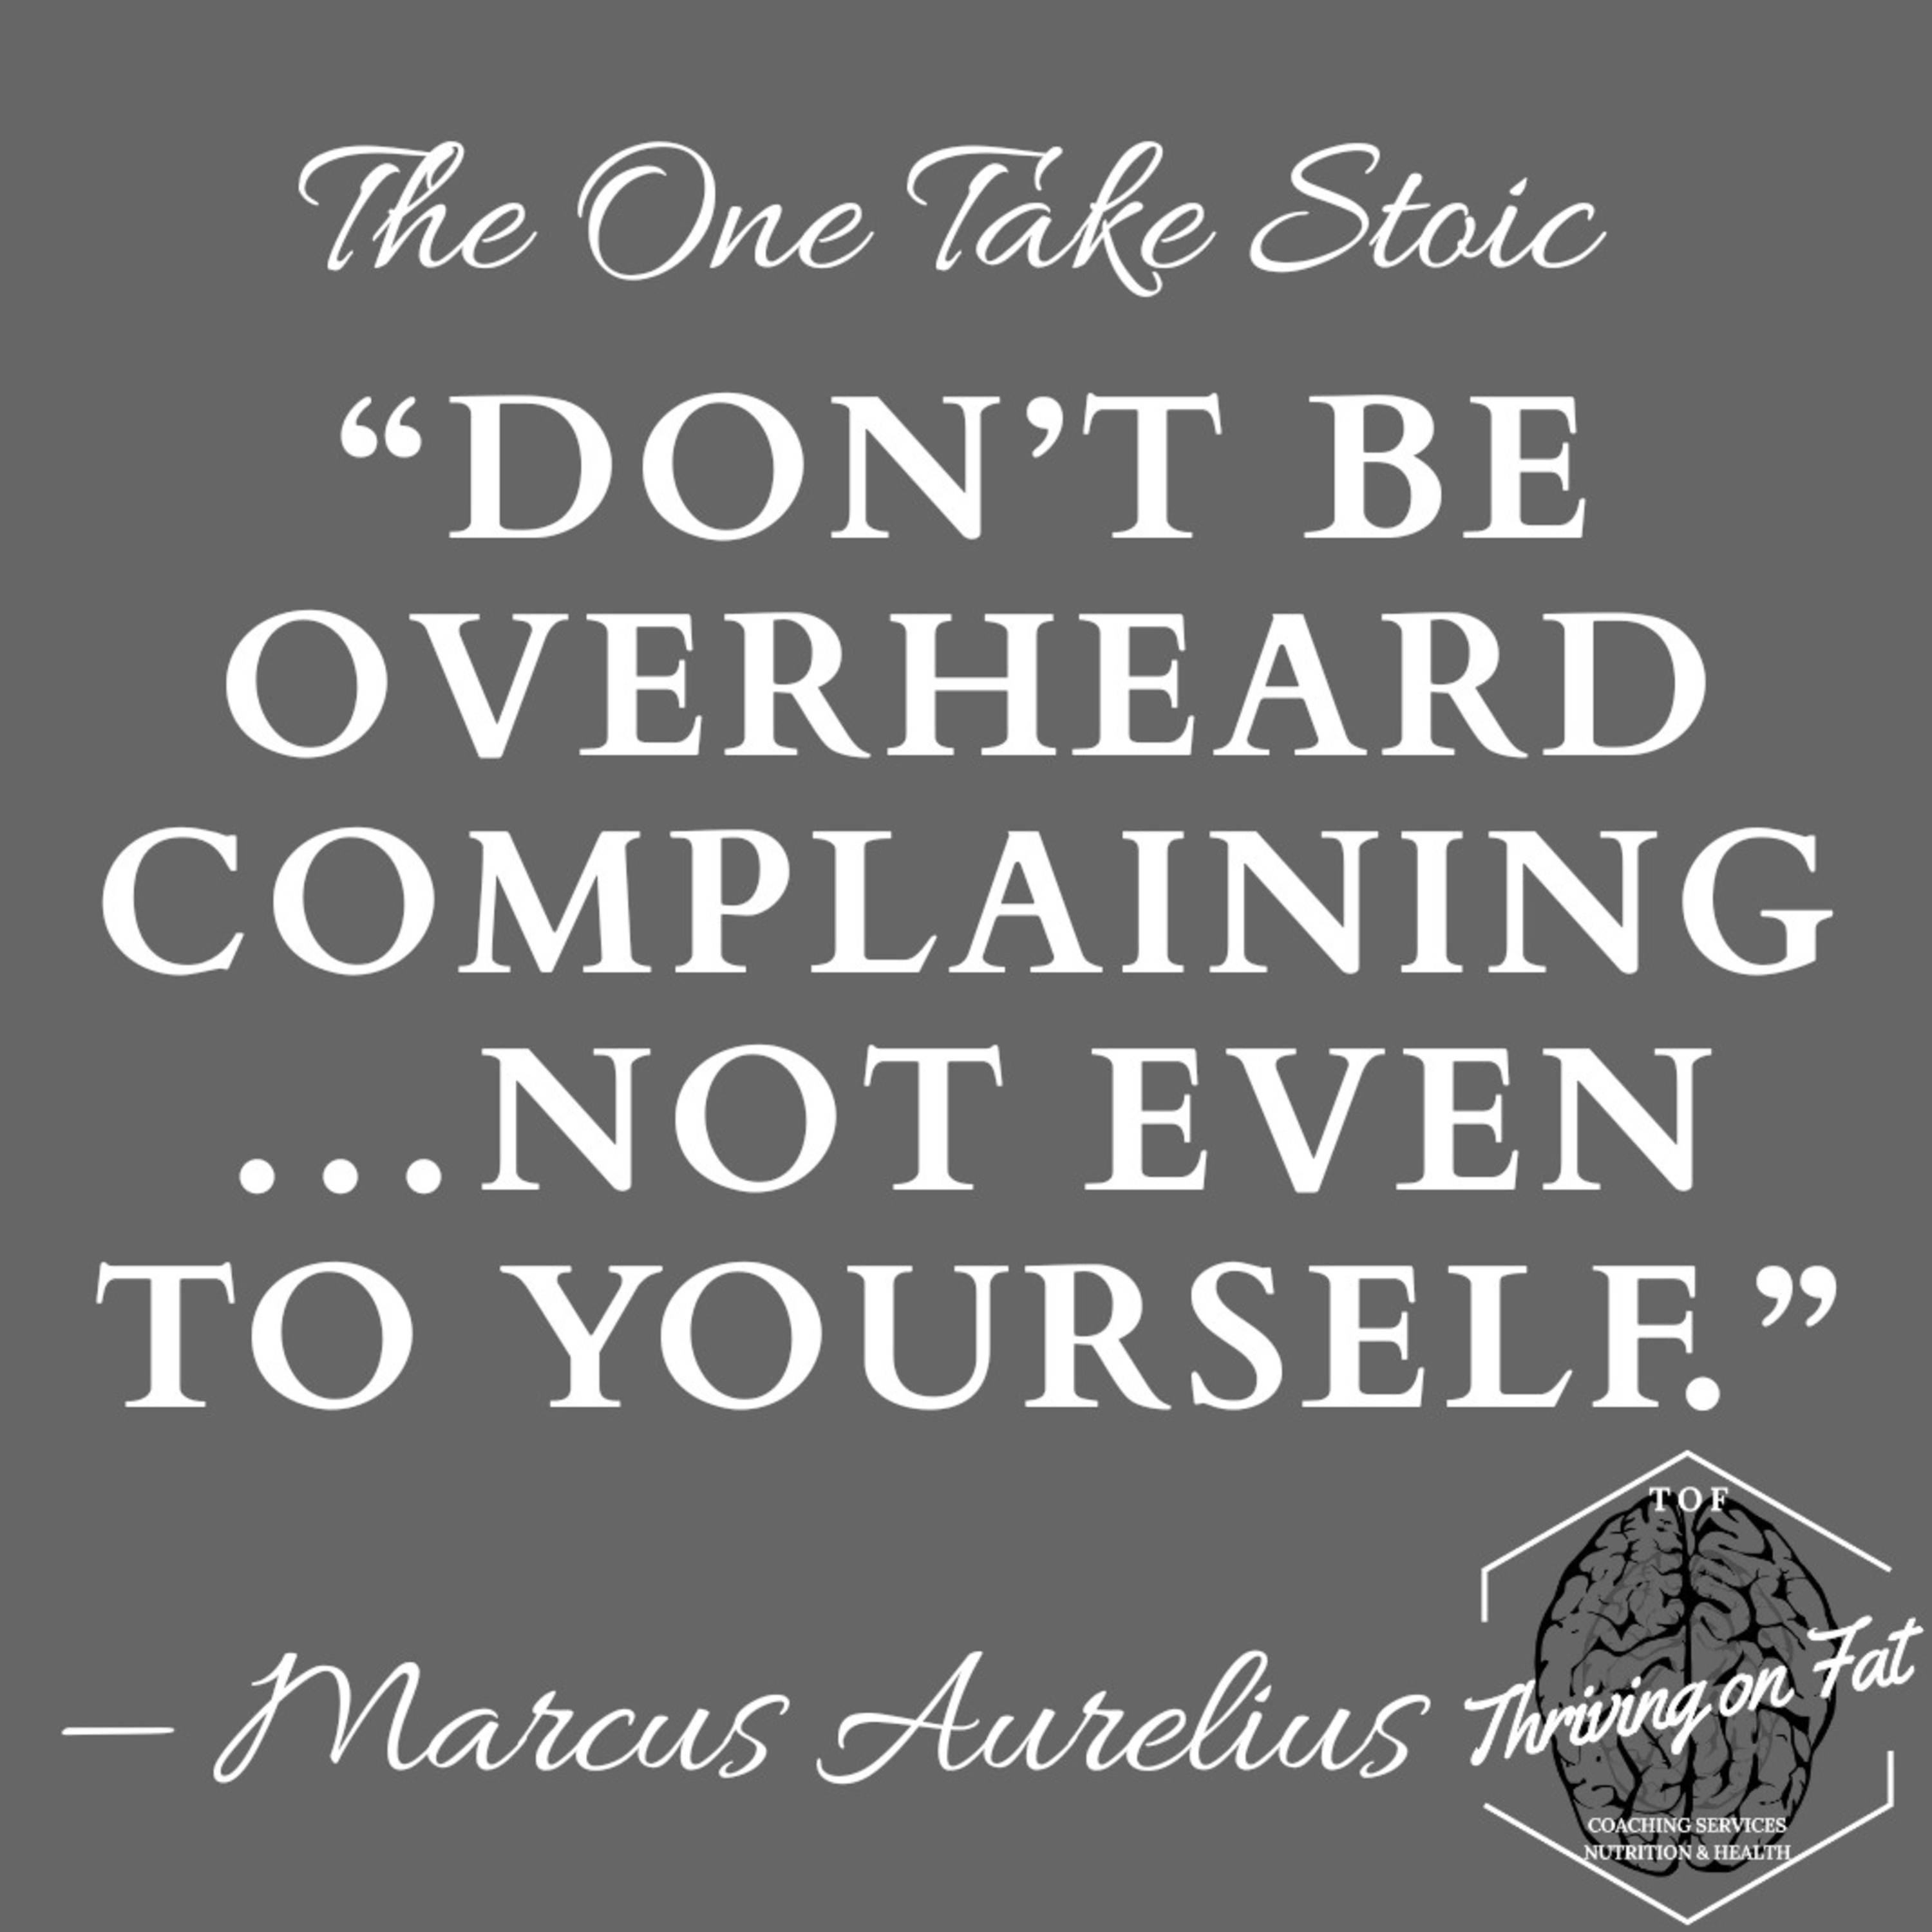 175: Stop complaining, start acting